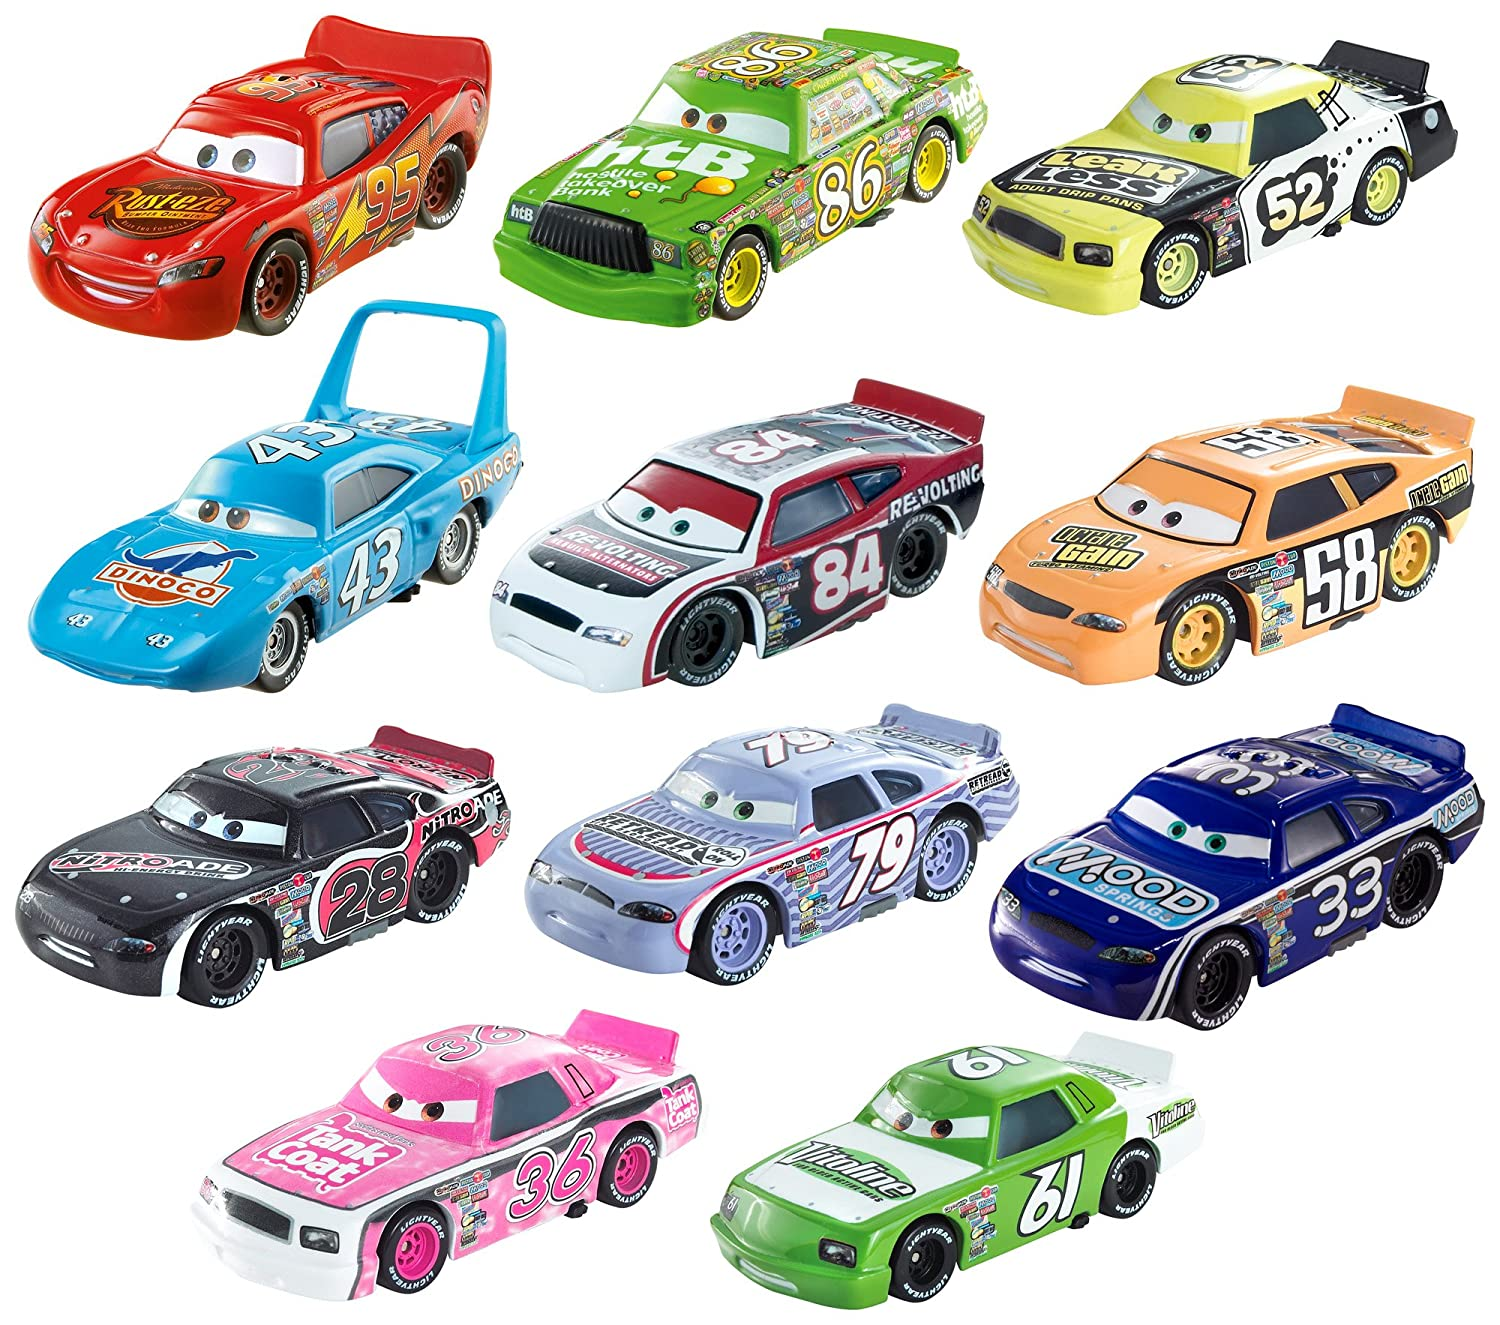 Mattel Dot-Com Piston Cup Collection DKF56